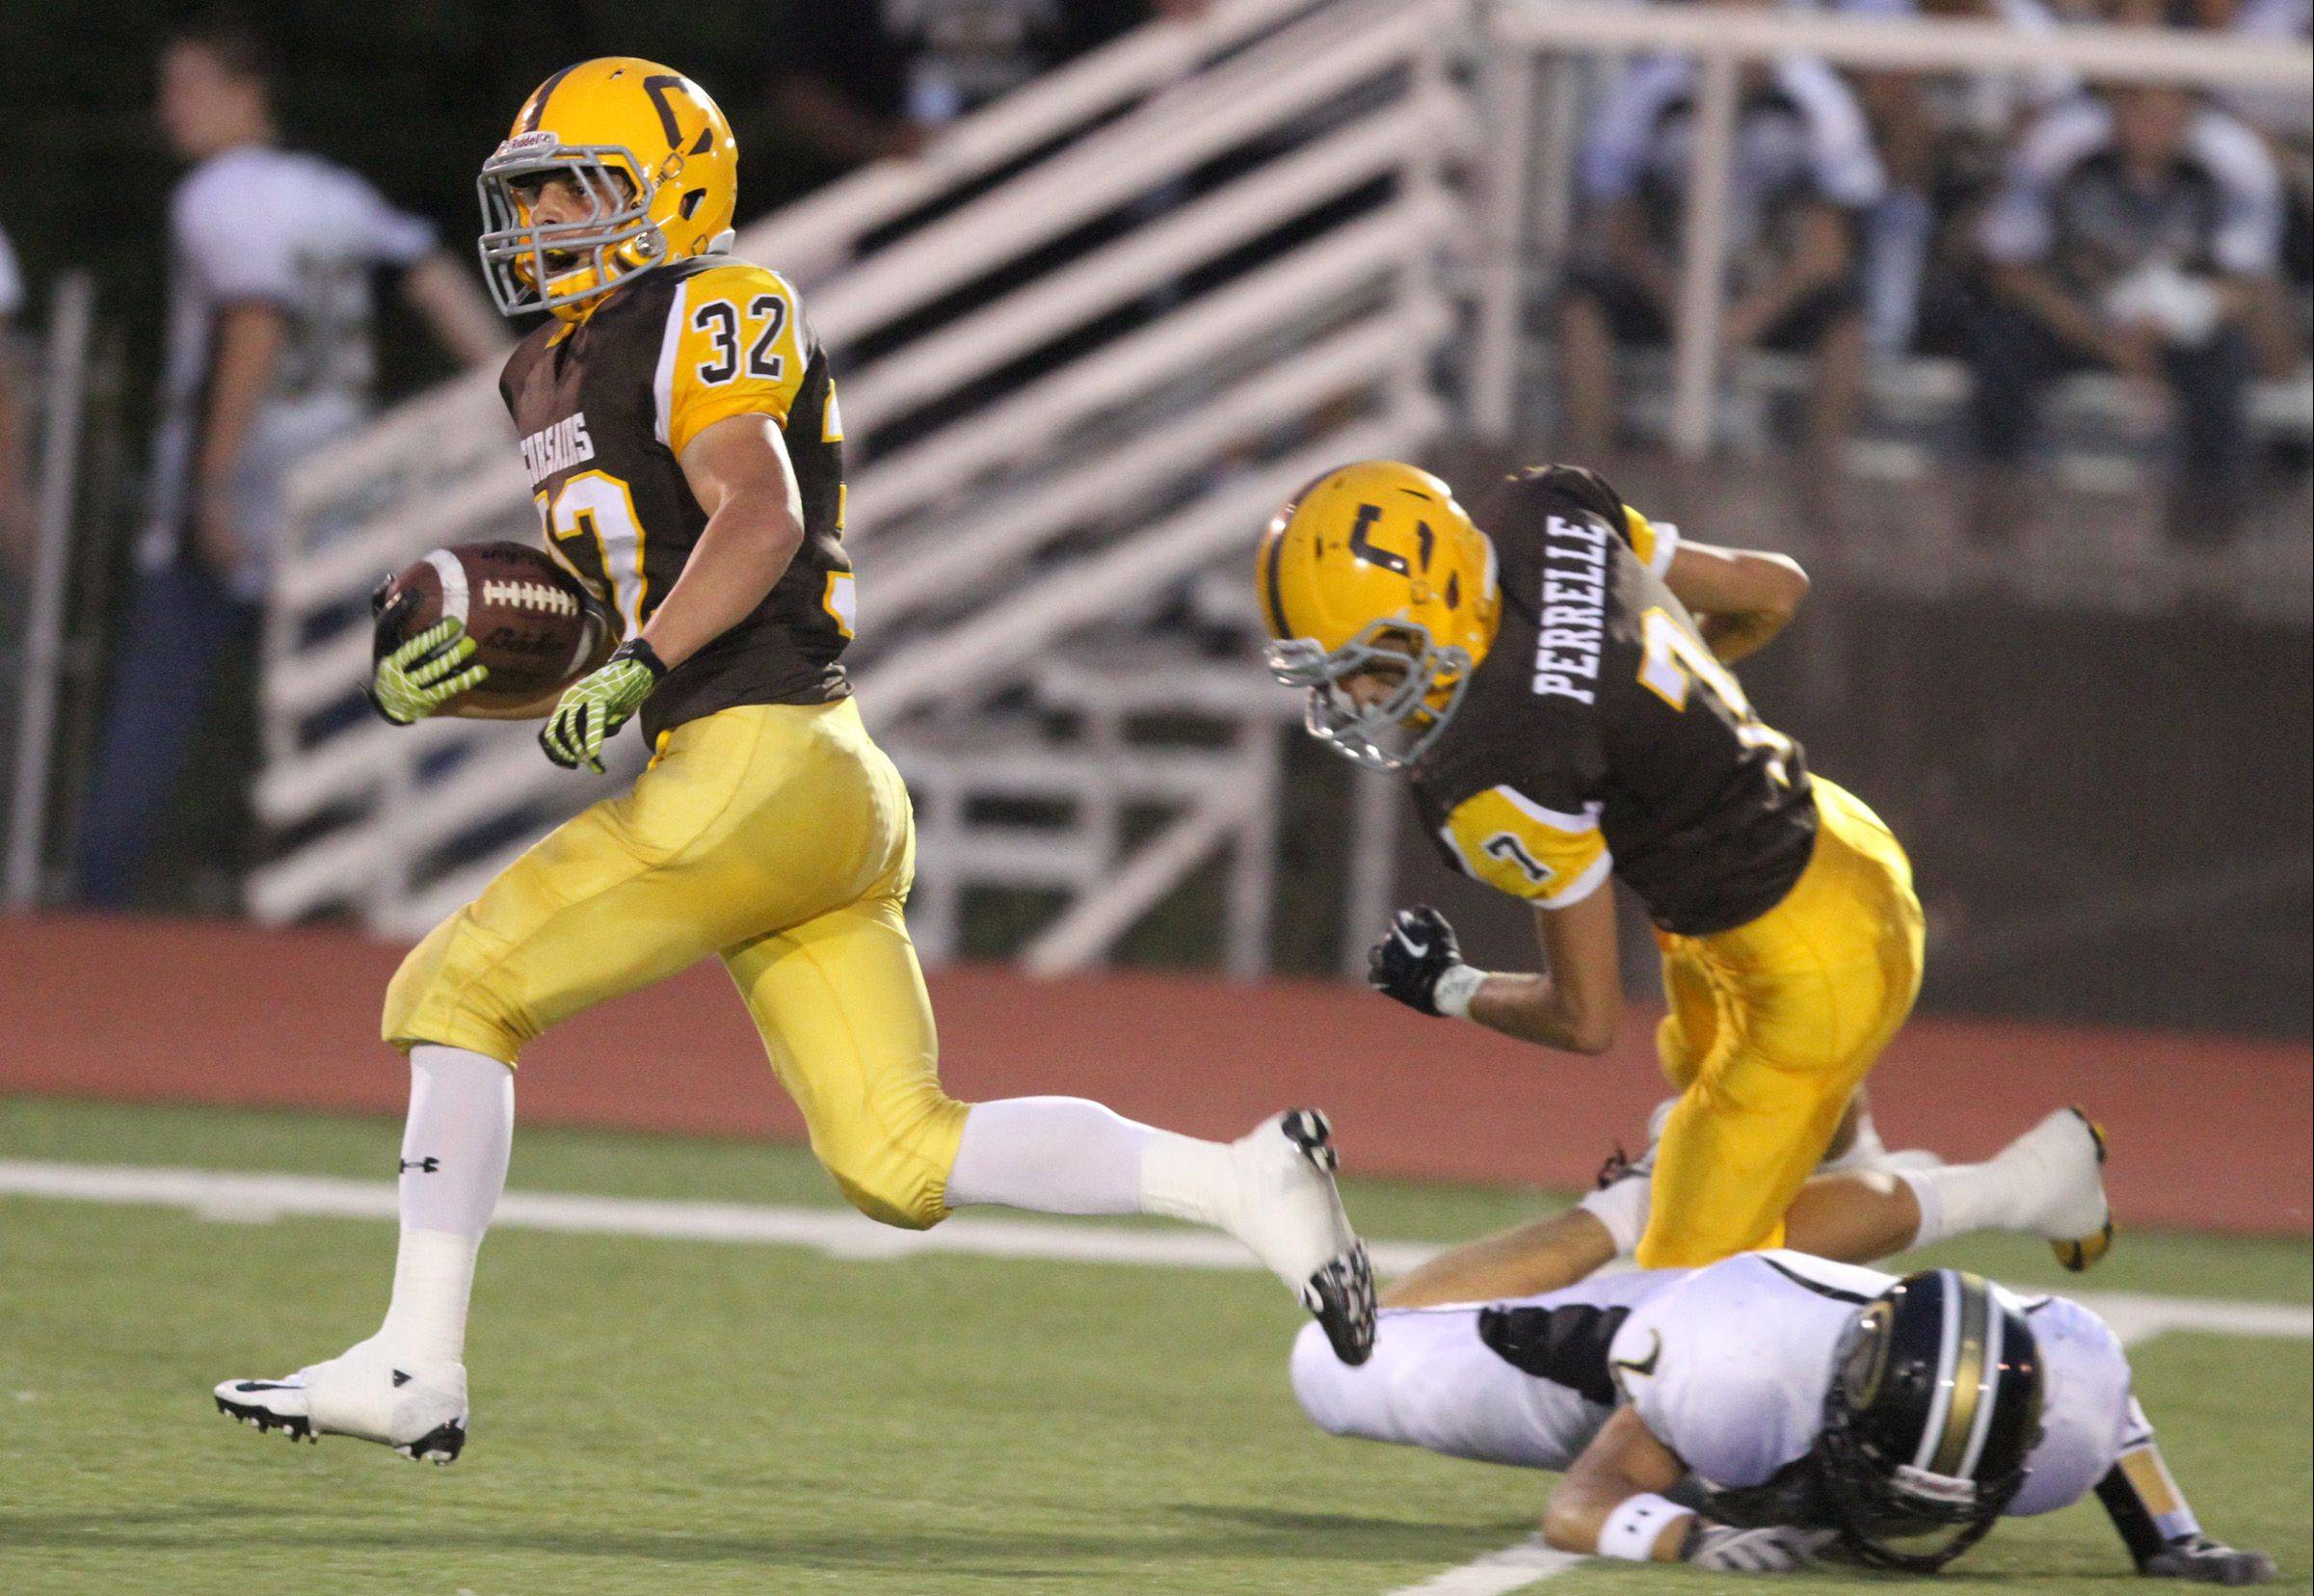 Carmel's Tim Serio scores the first touchdown of the game against Glenbard North at Carmel on Friday.